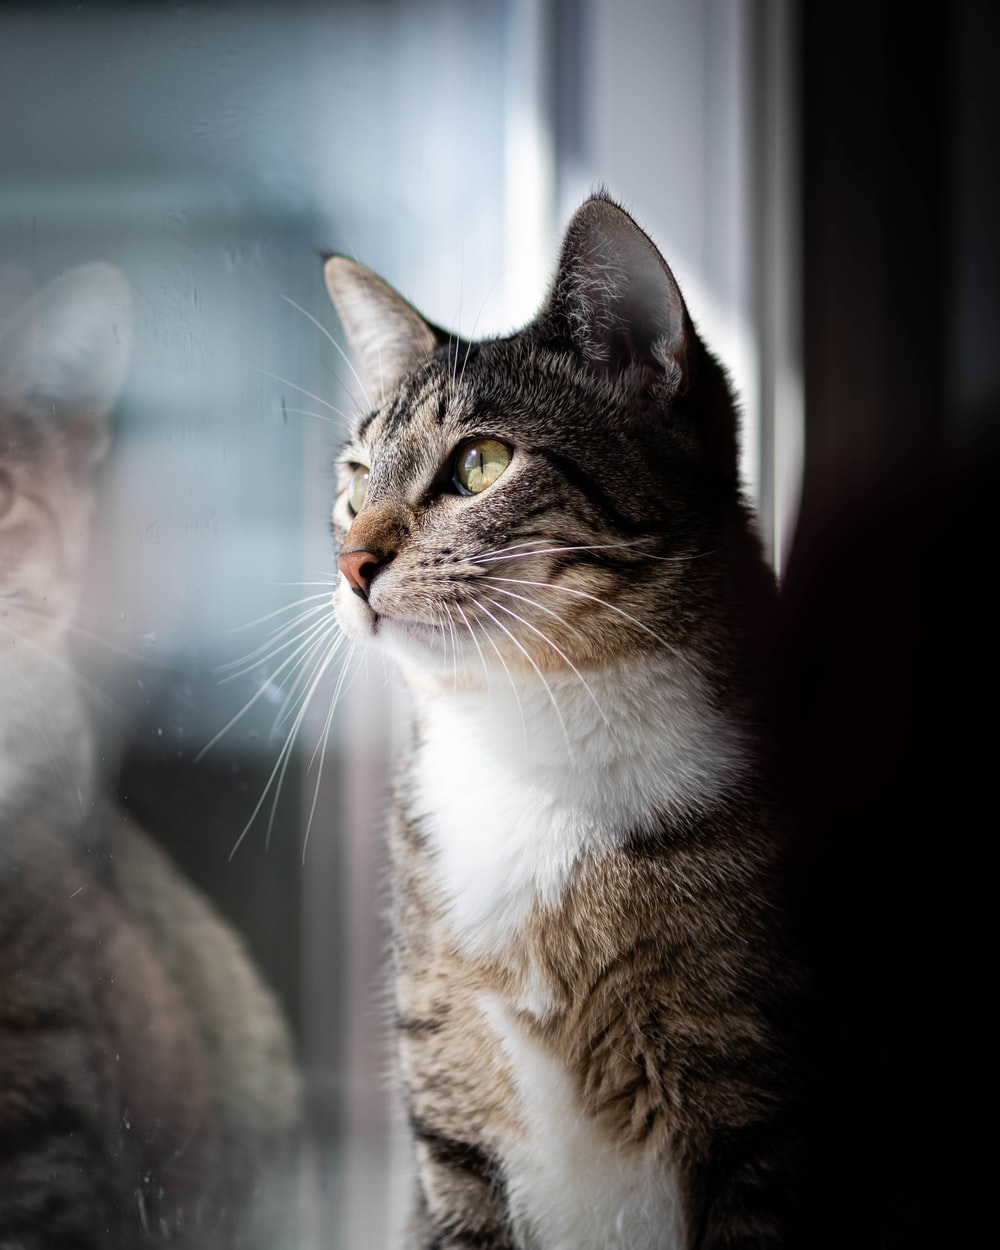 brown tabby cat looking at the window